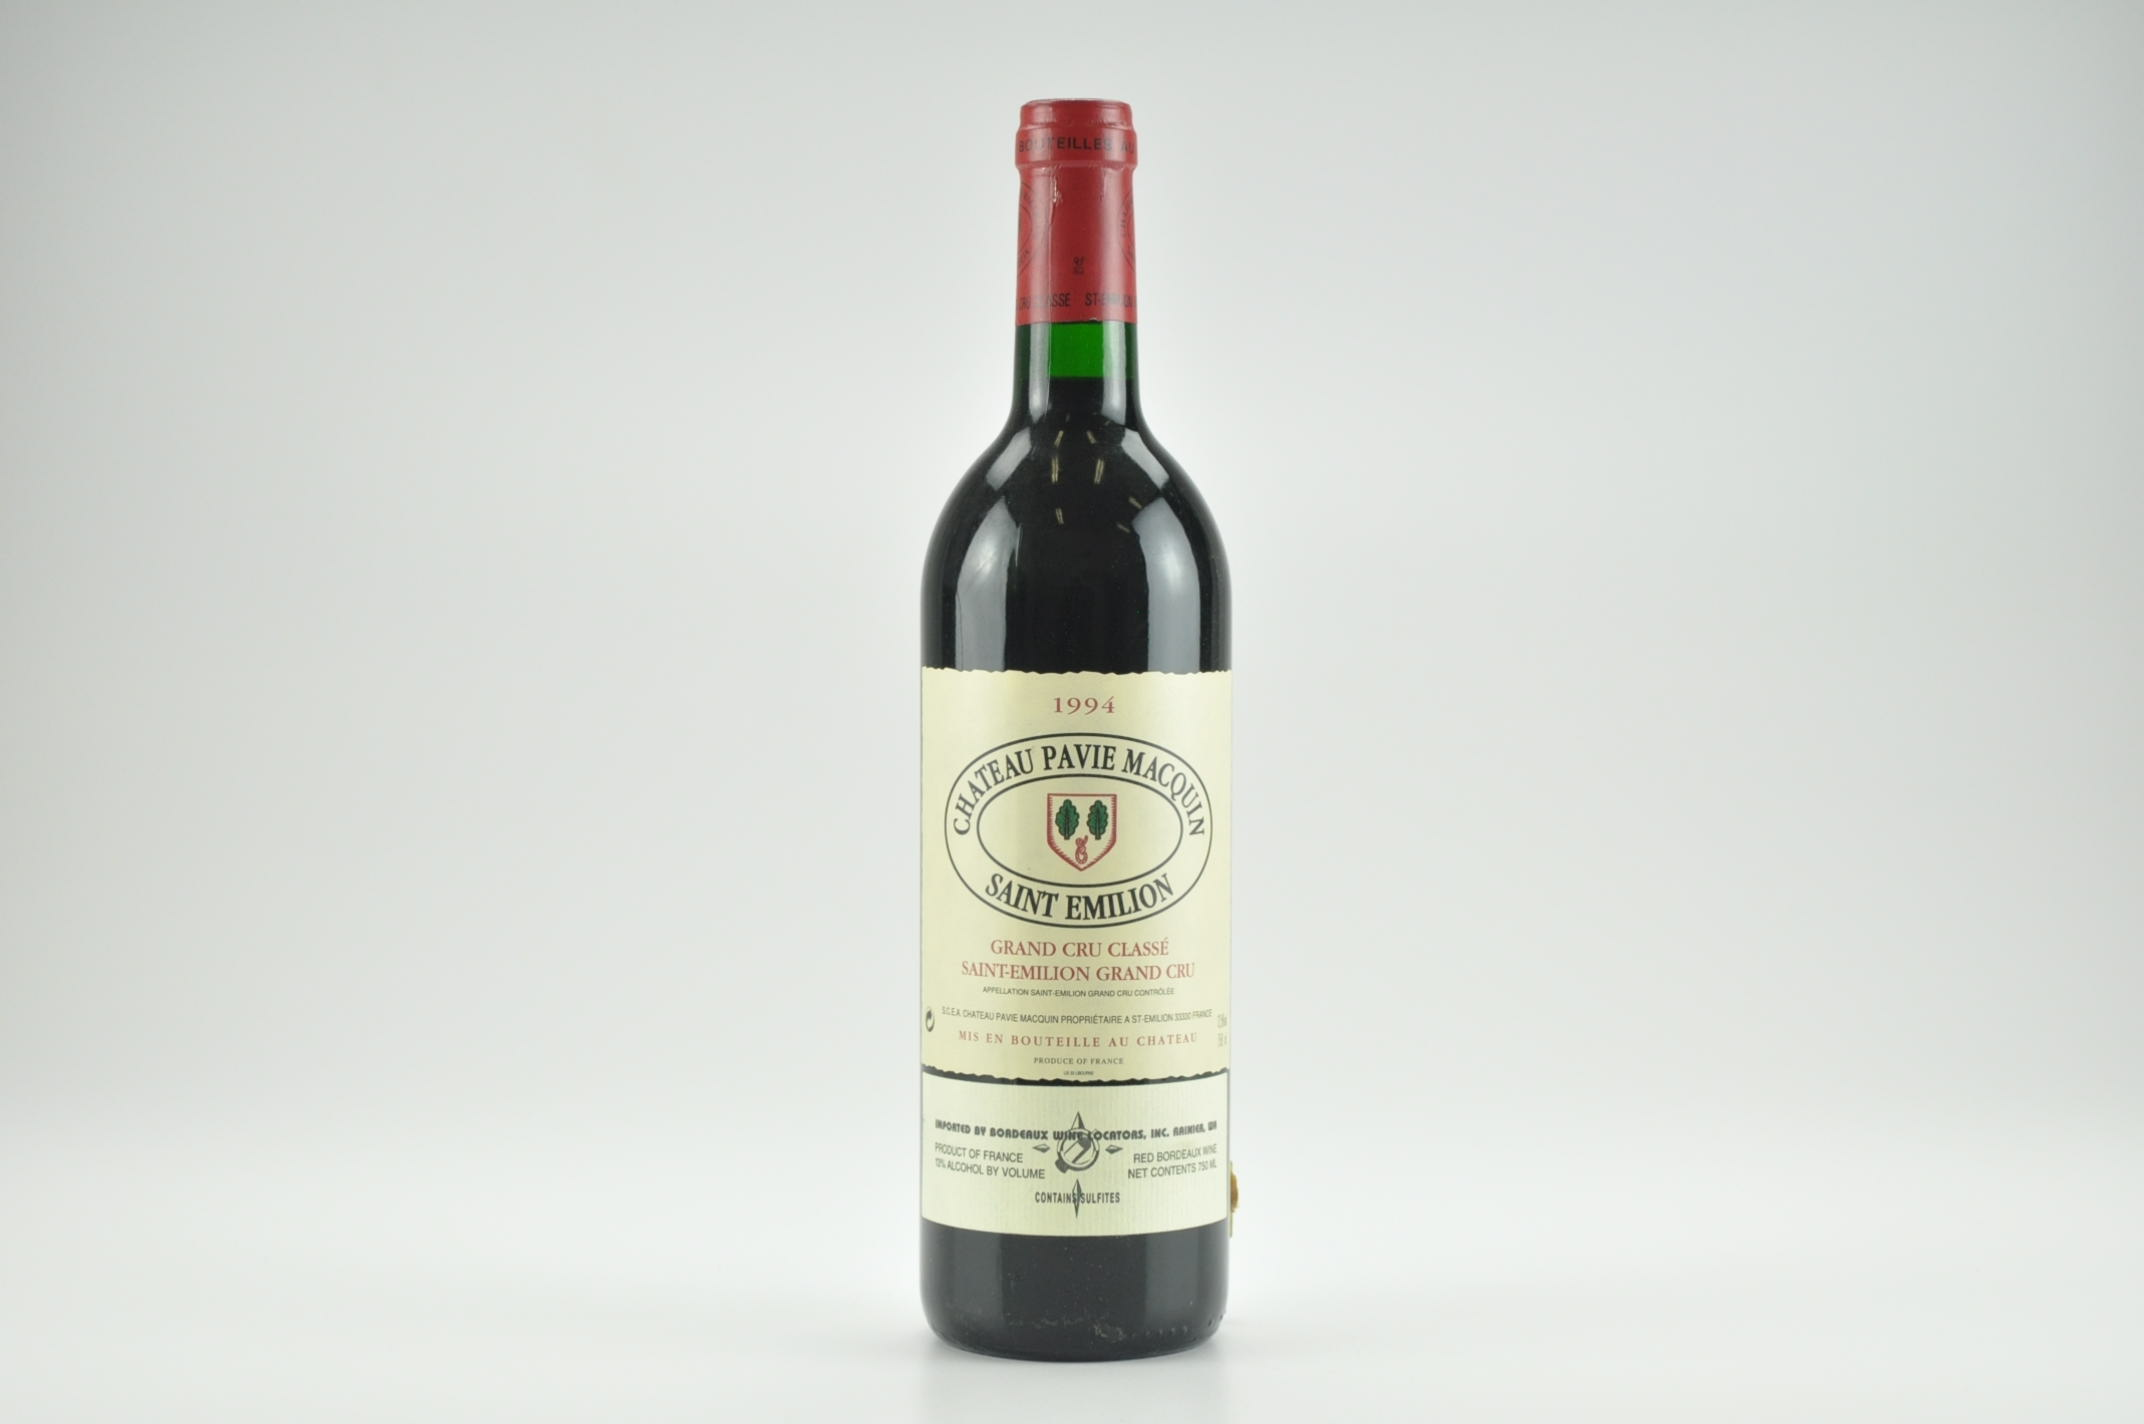 1994 Chateau Pavie Macquin Bordeaux, Saint-Emilion WS--90